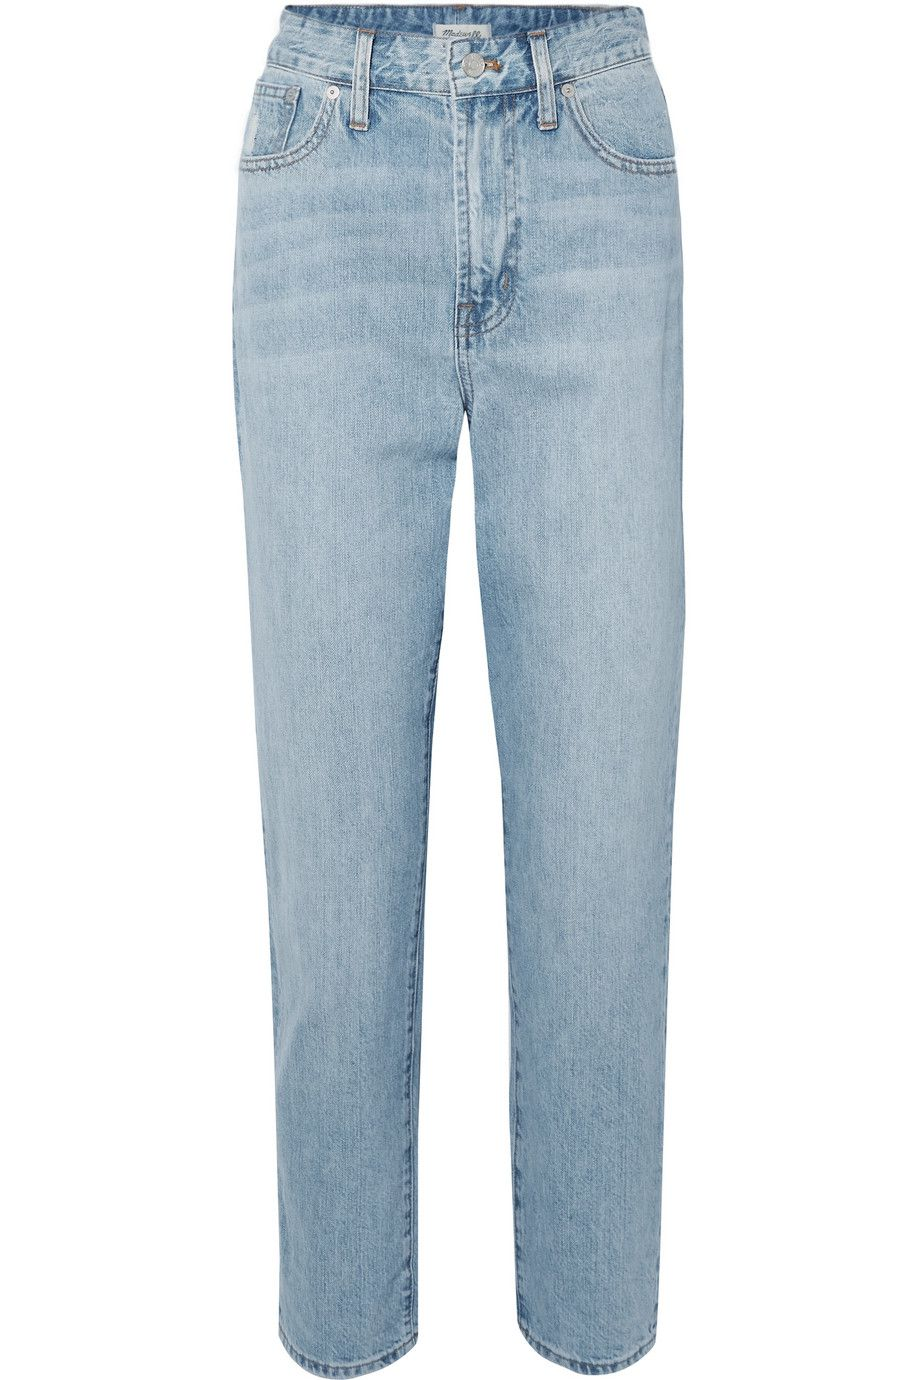 The Curvy Perfect Vintage High-Rise Straight-Leg Jeans